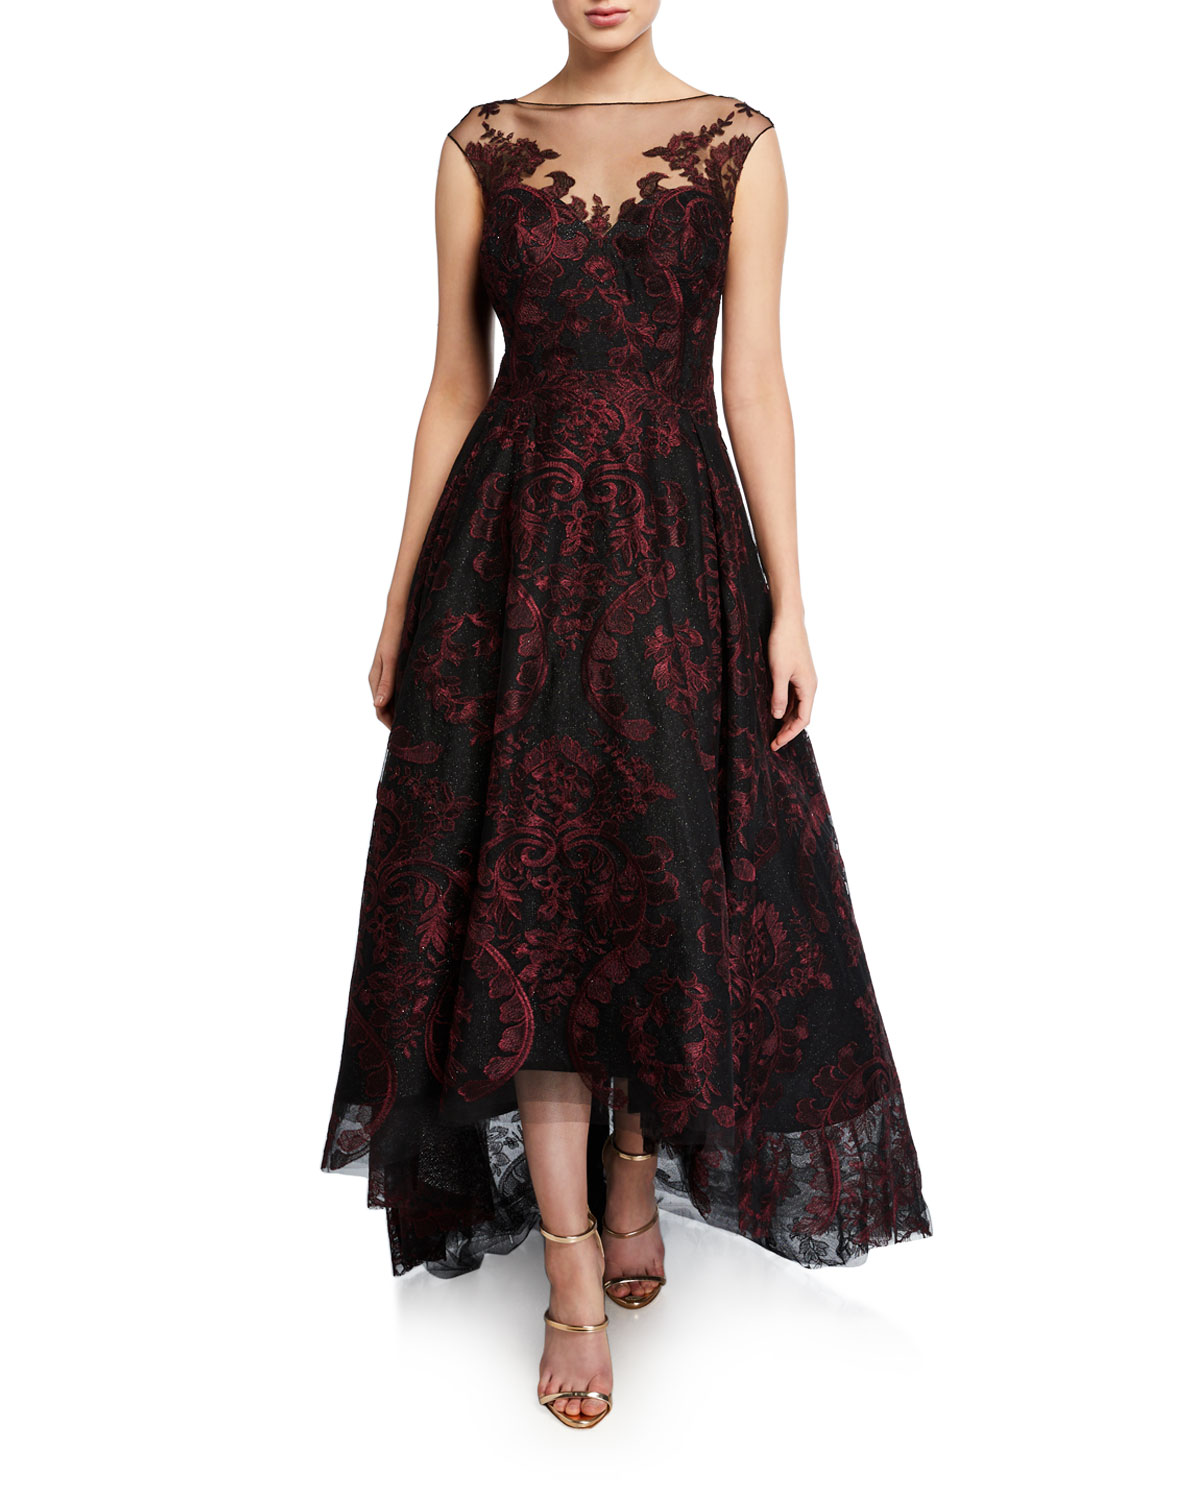 Rickie Freeman For Teri Jon Dresses CAP-SLEEVE HIGH-LOW EMBROIDERED TULLE ILLUSION DRESS